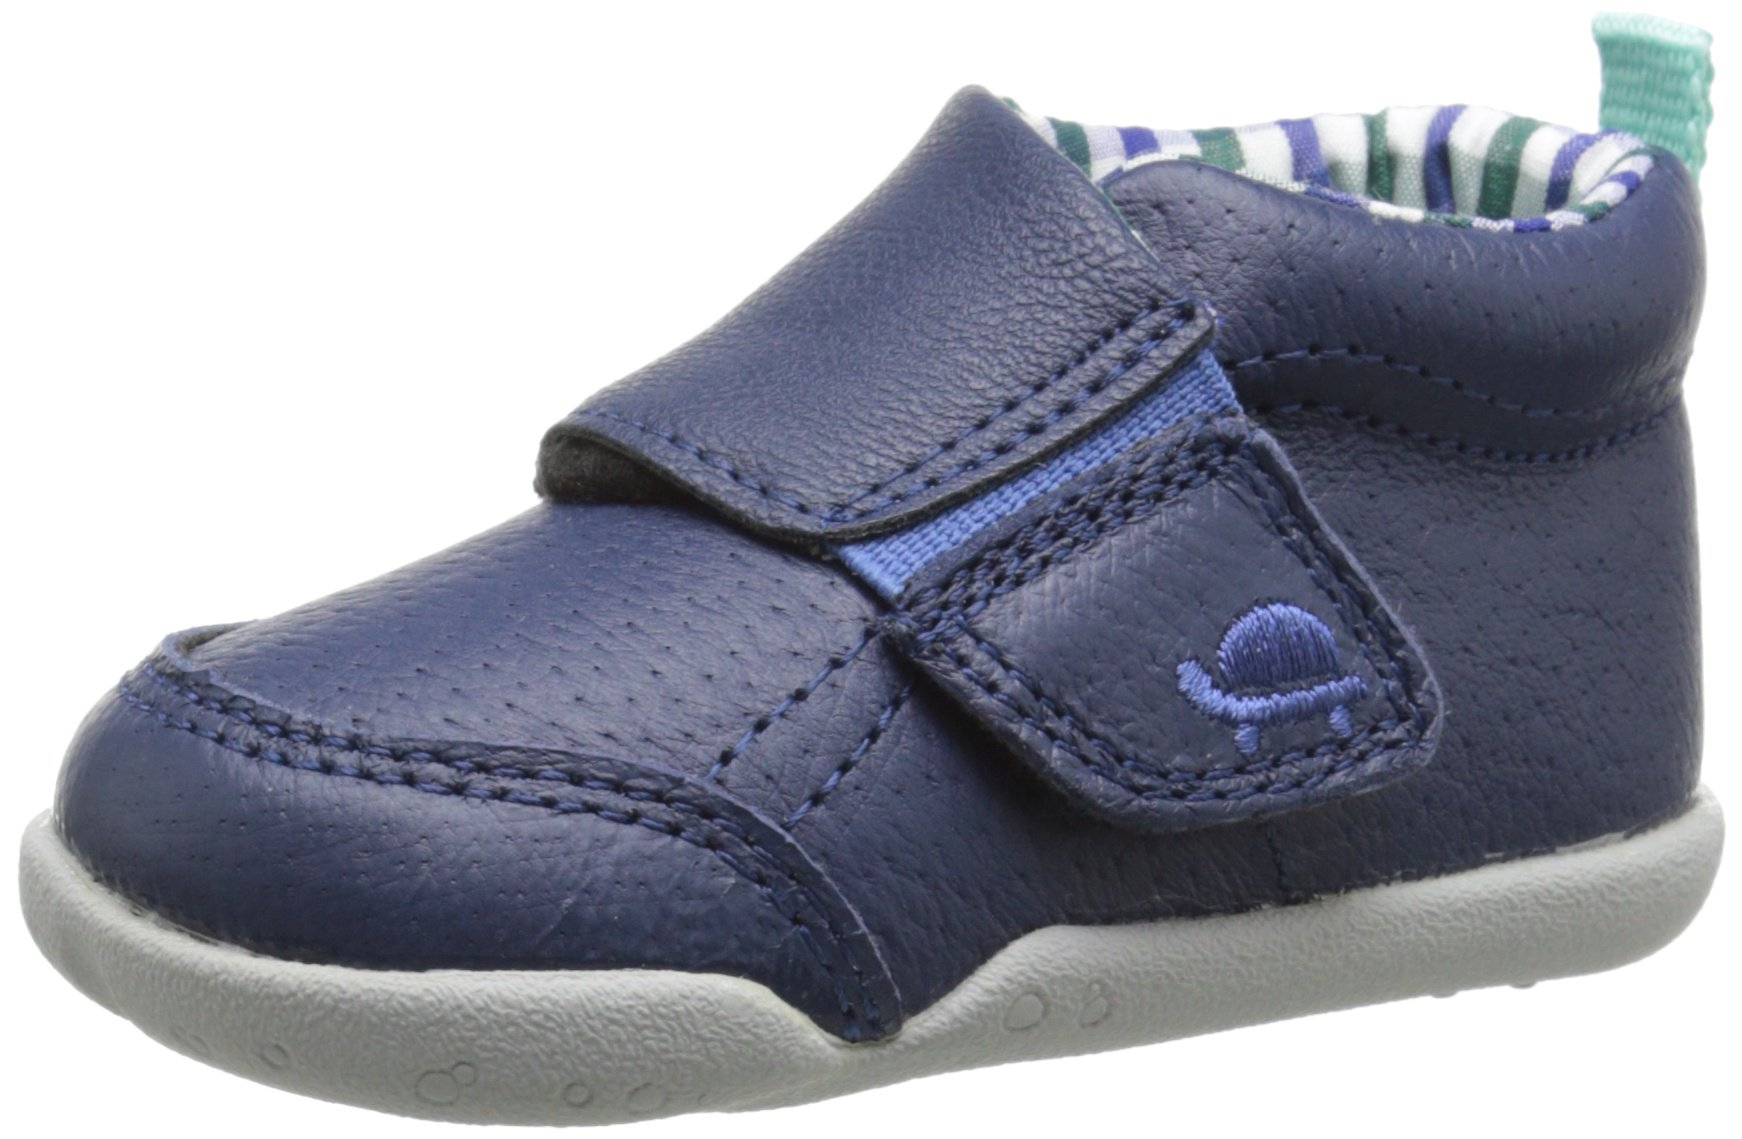 Carter's Every Step Bobby P2 Early Walker Shoe (Infant/Toddler), Navy/Plaid, 5 M US Toddler